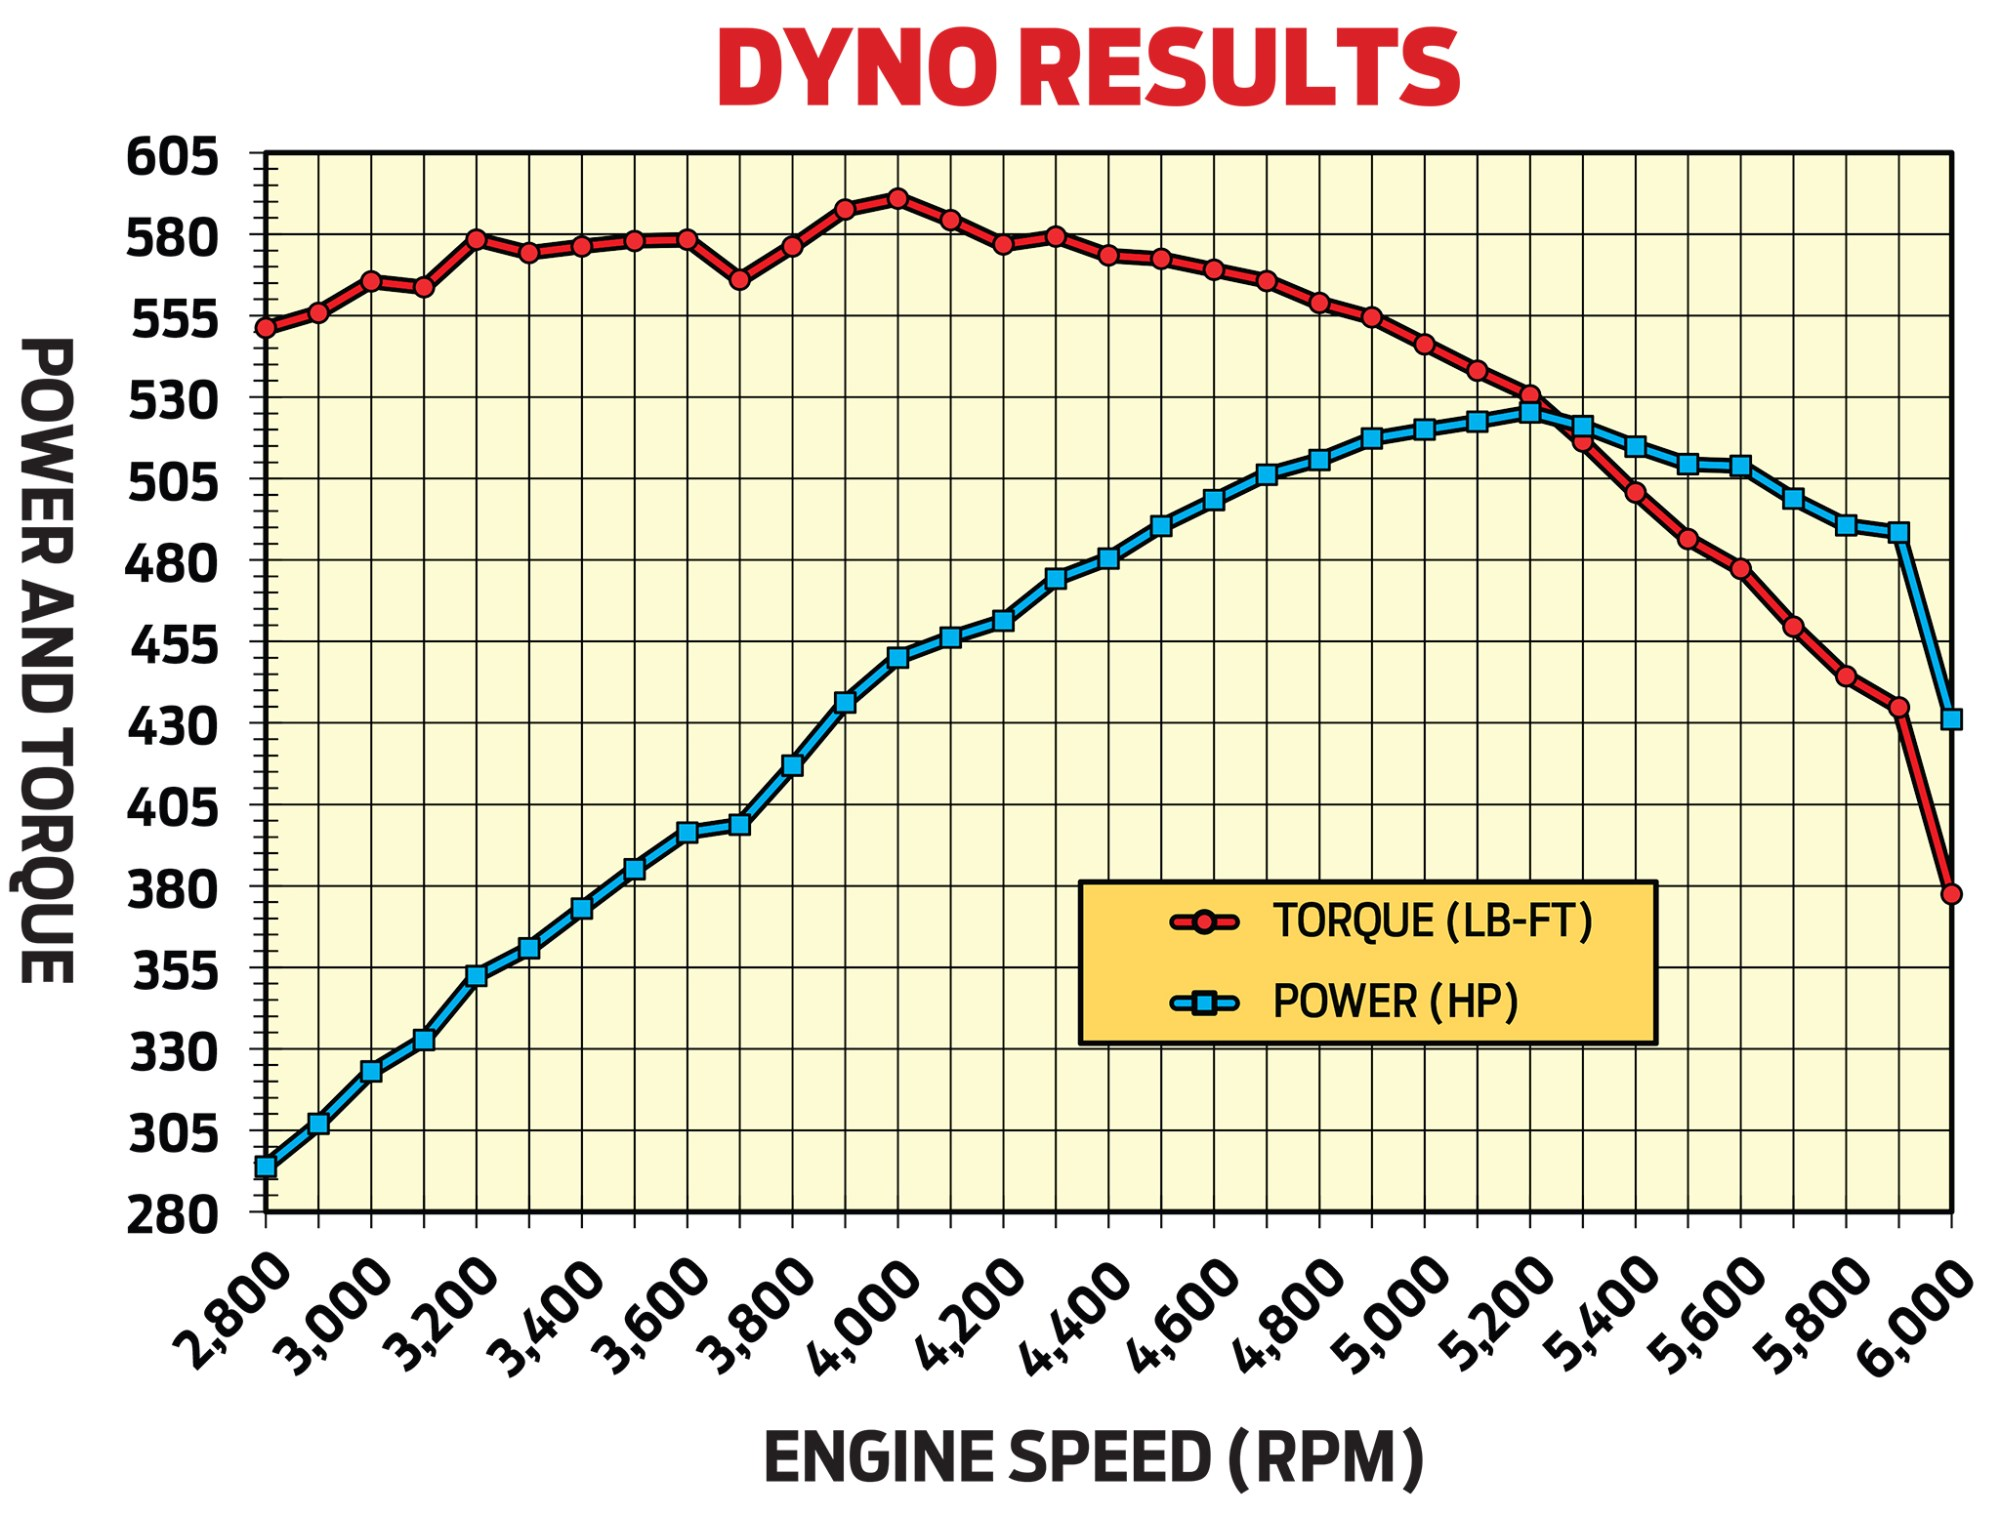 hight resolution of in preliminary tests on advanced engine concepts engine dyno rob s 481ci olds peaked at 525 3